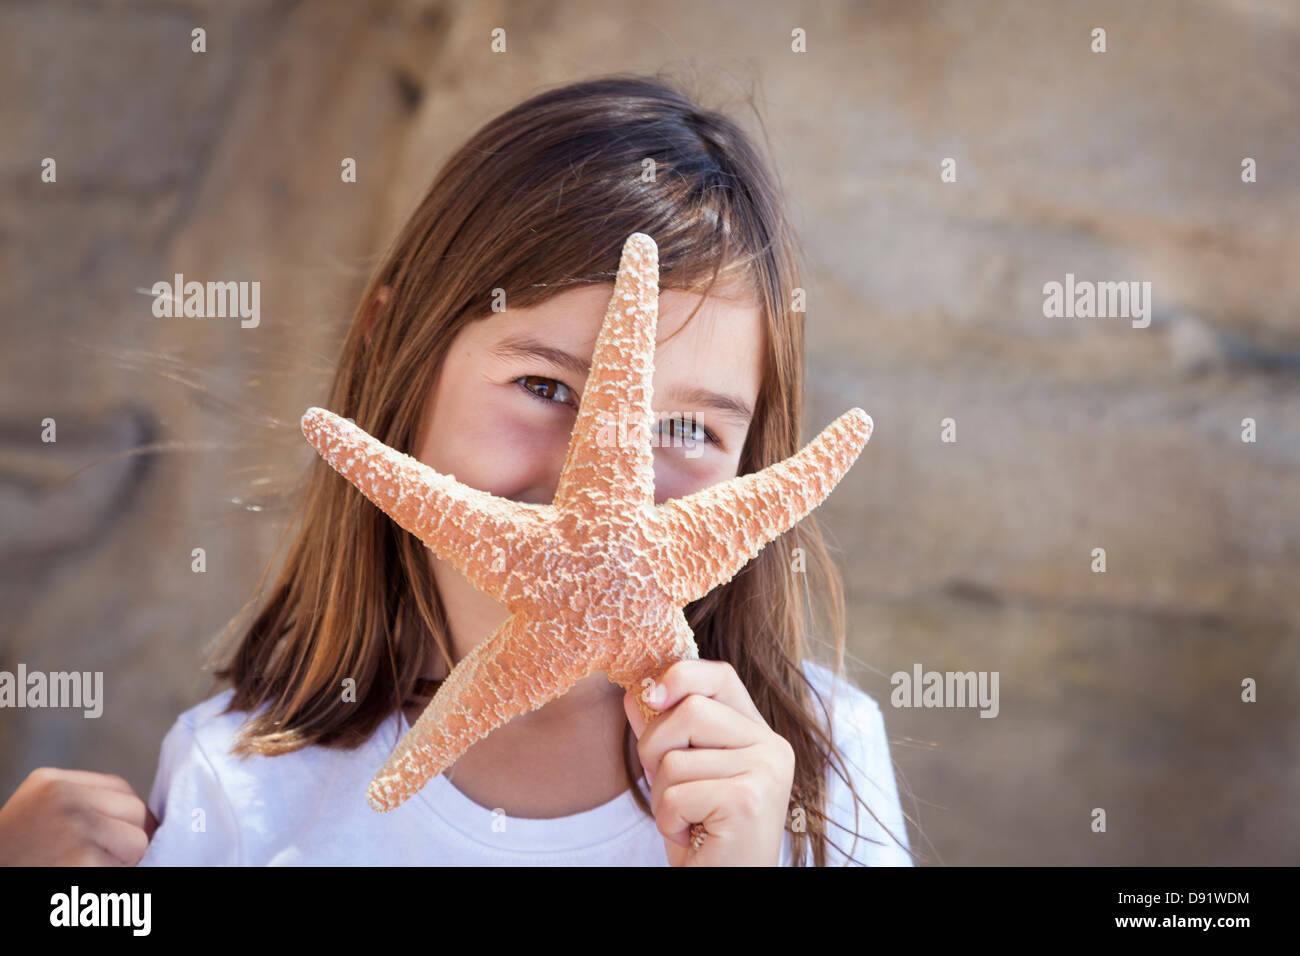 Young Pretty Girl Playing with Starfish. - Stock Image